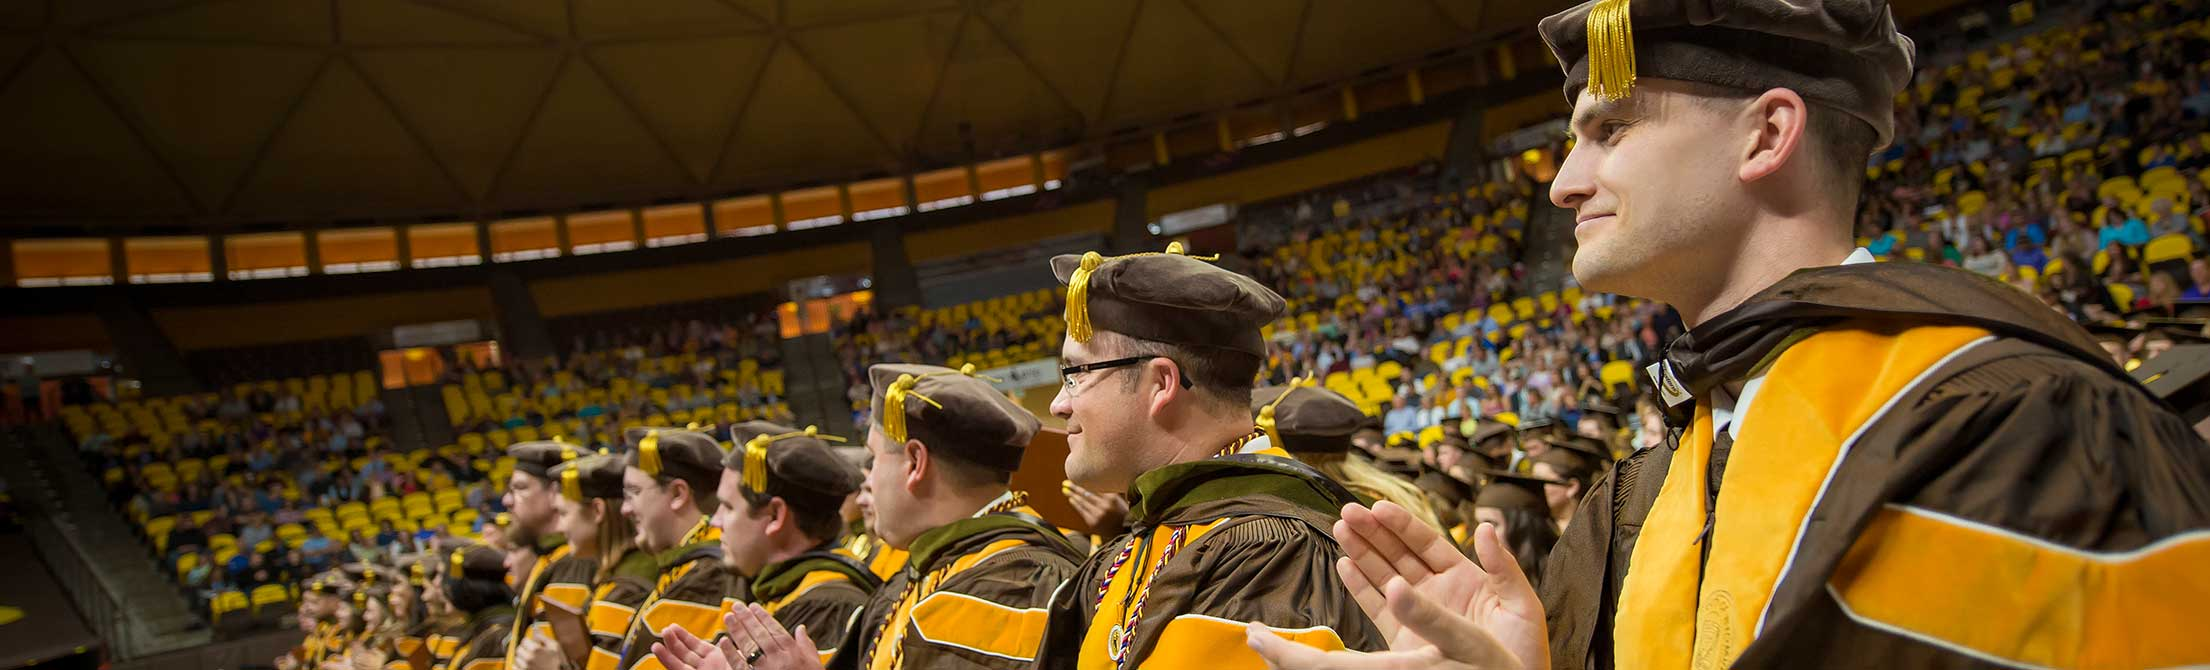 Doctoral graduates attending University of Wyoming graduation